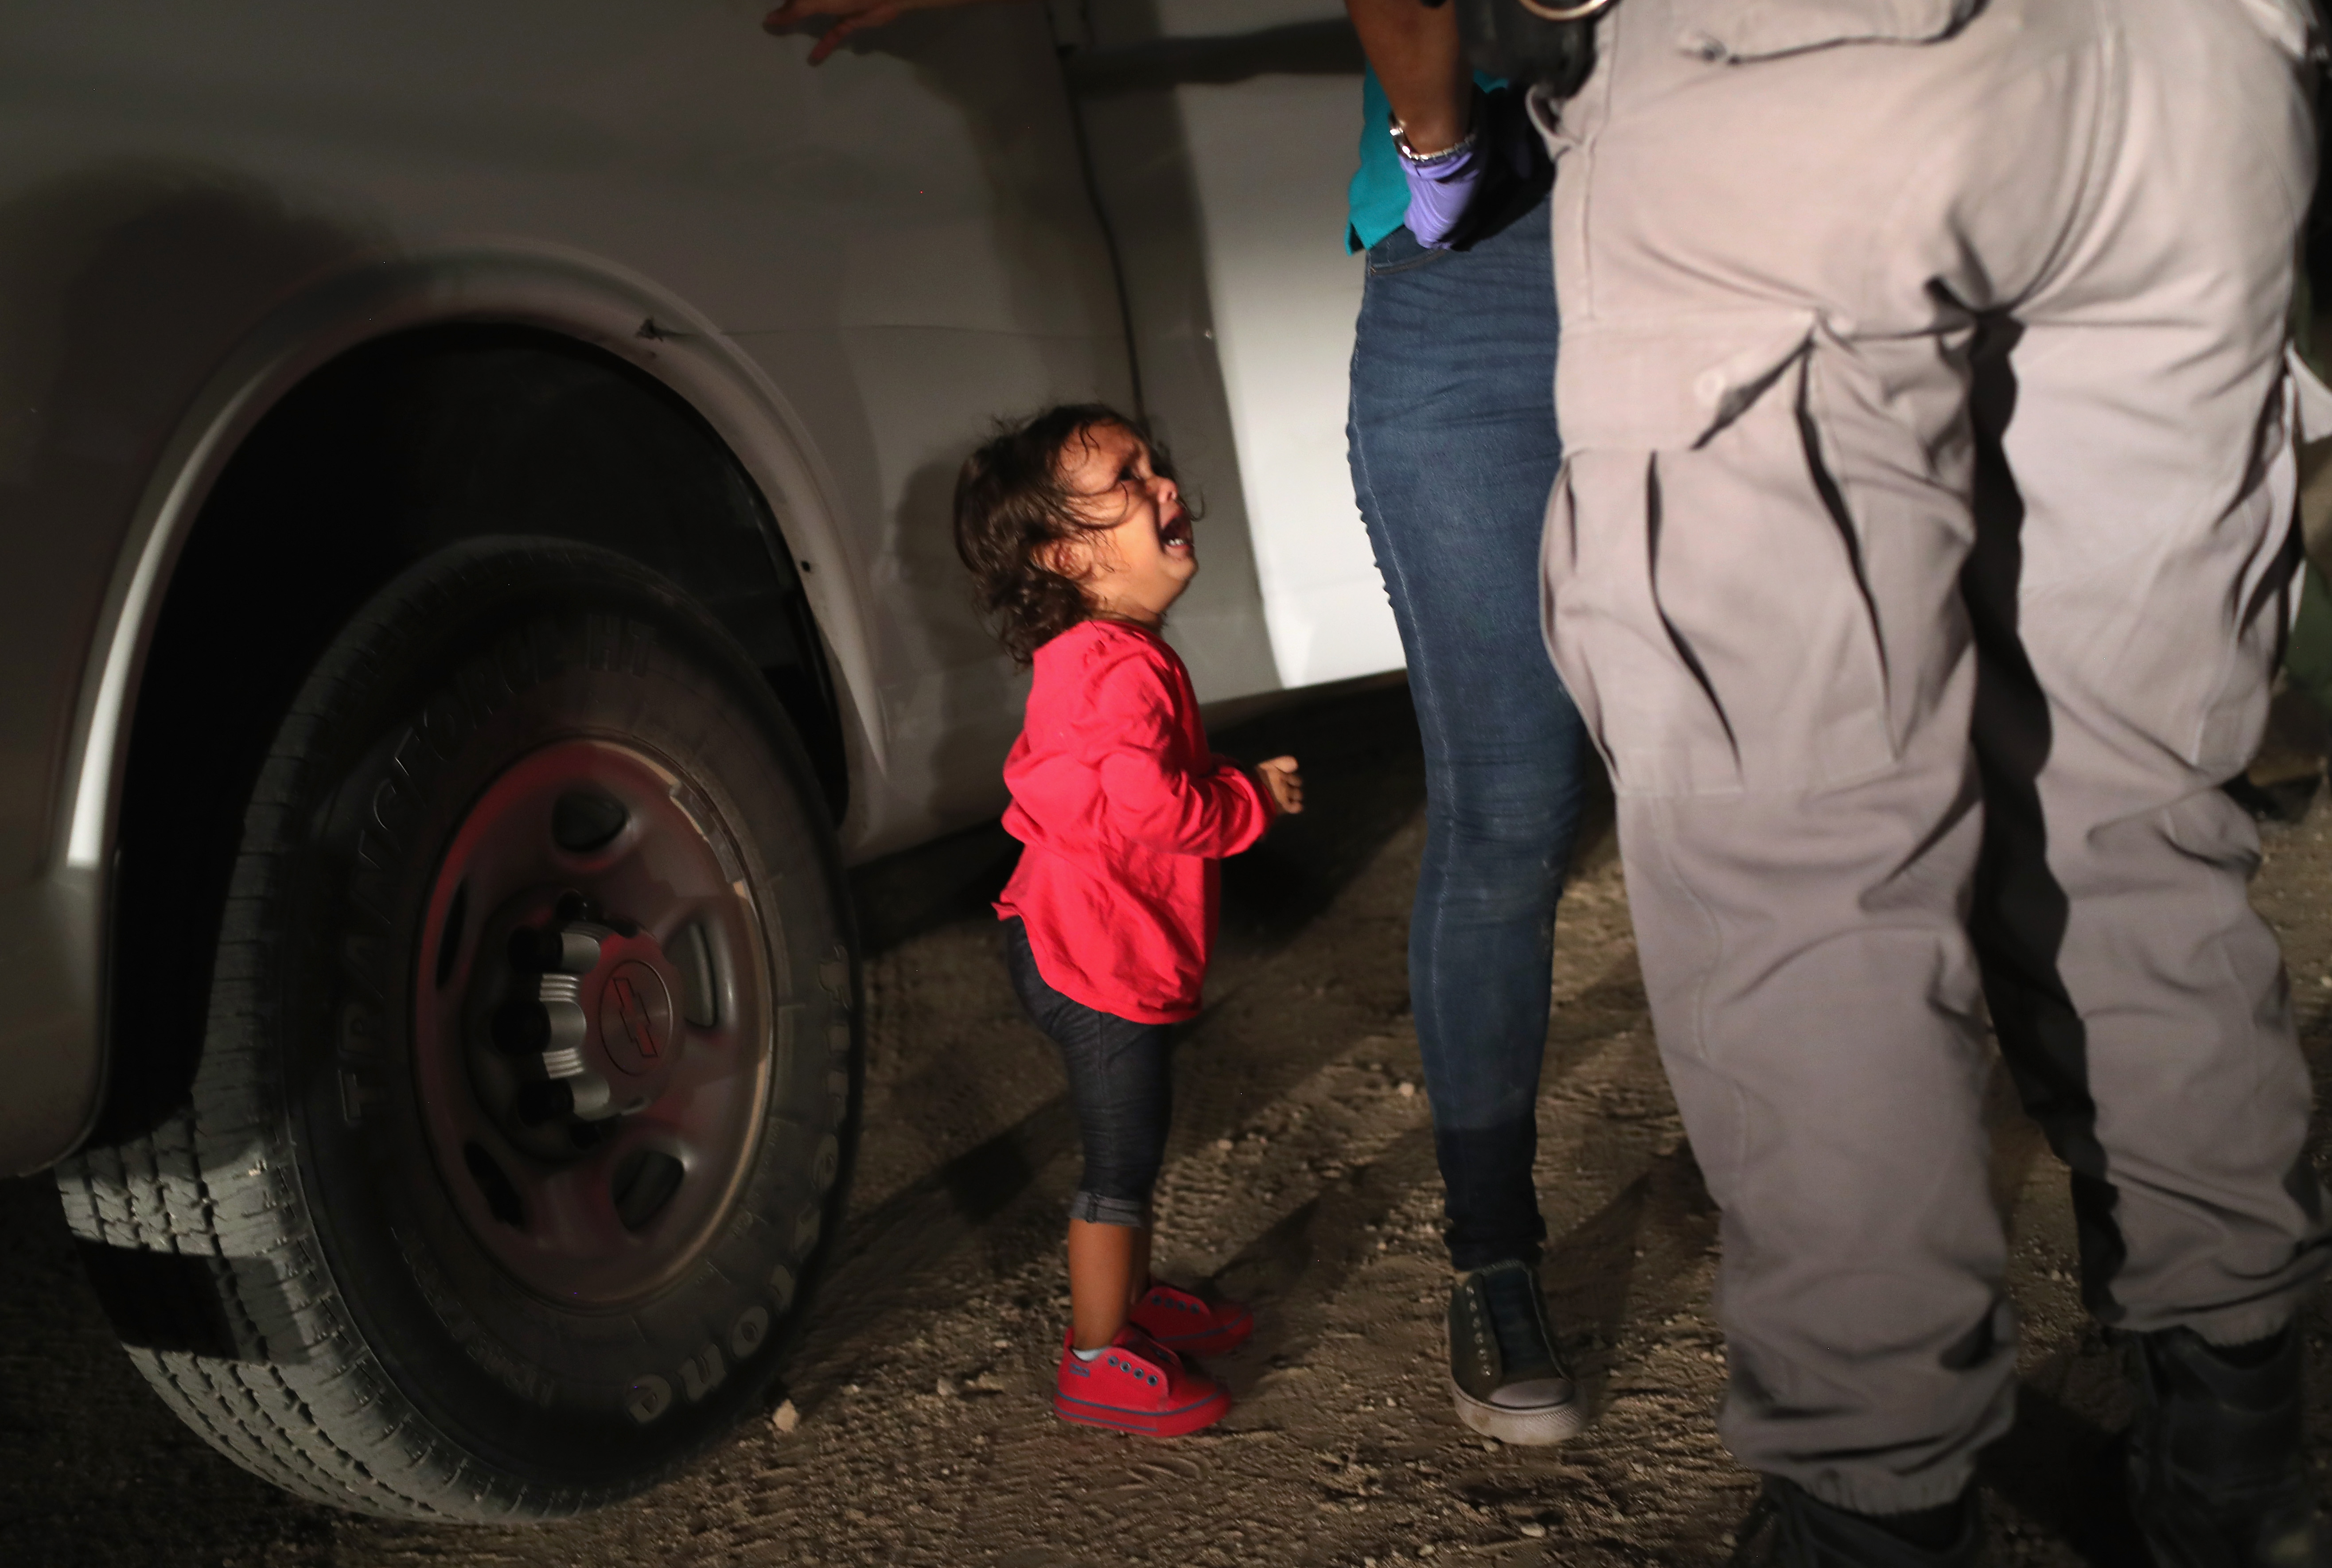 Family separation at the border: Donald Trump and the triumph of cruelty